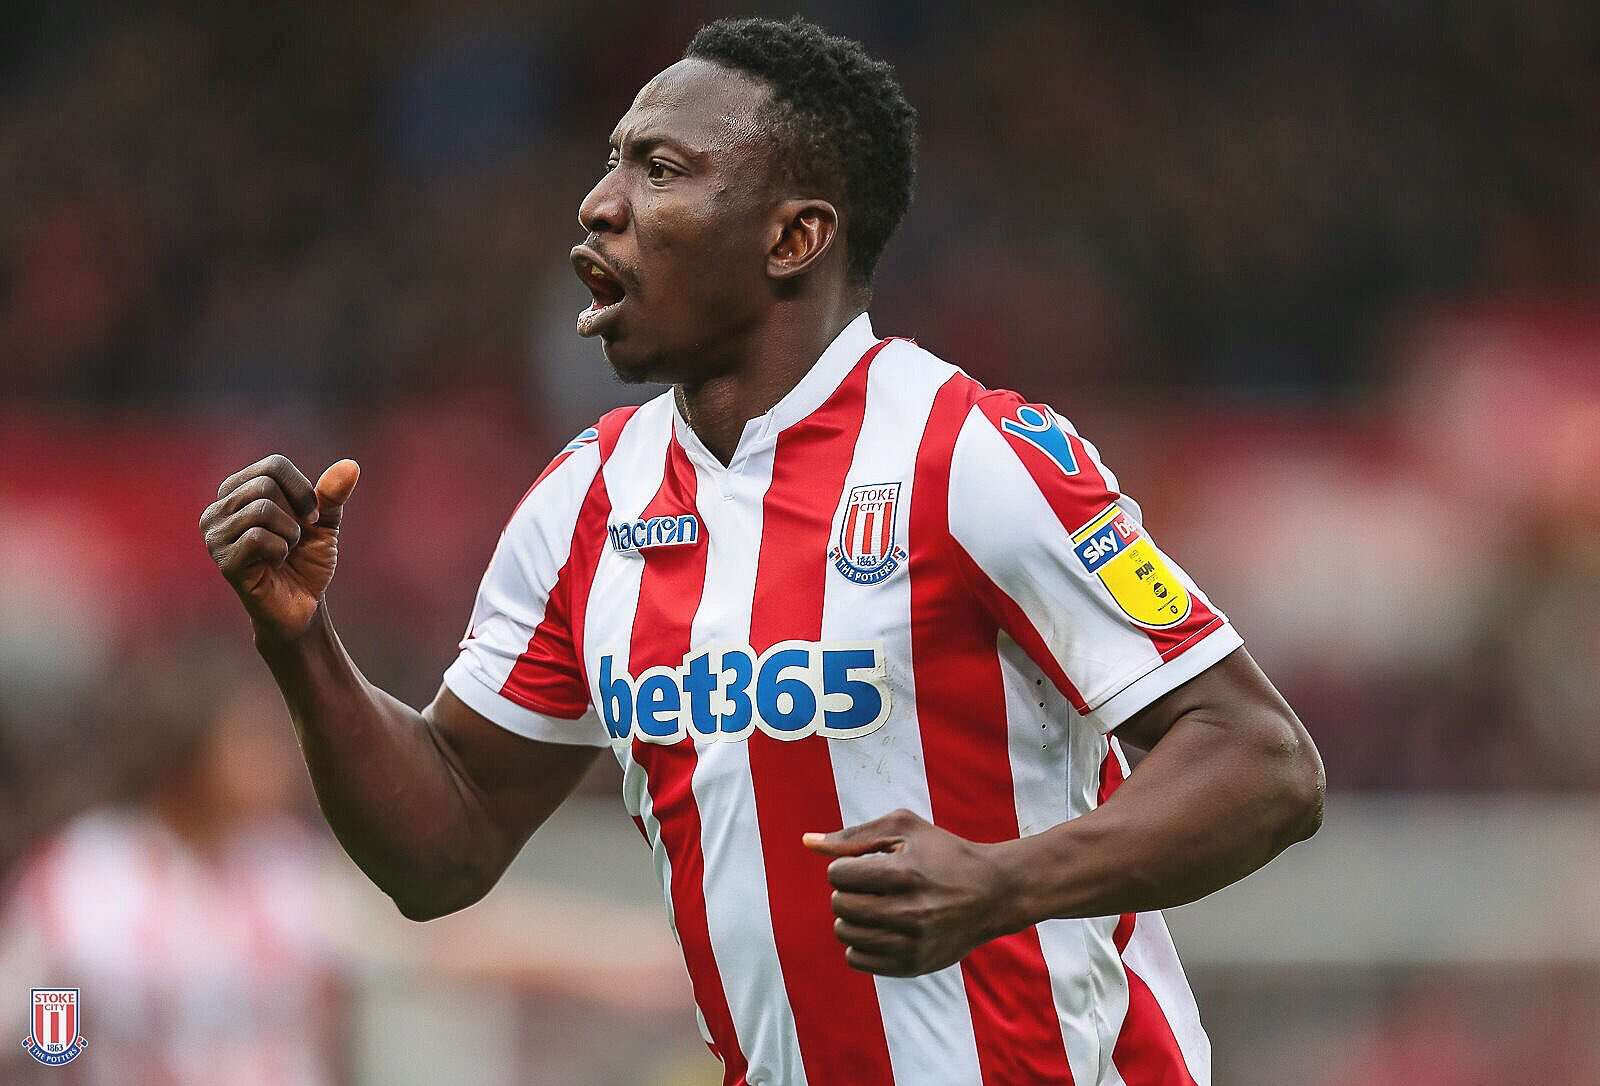 Etebo happy to score first Stoke City goal